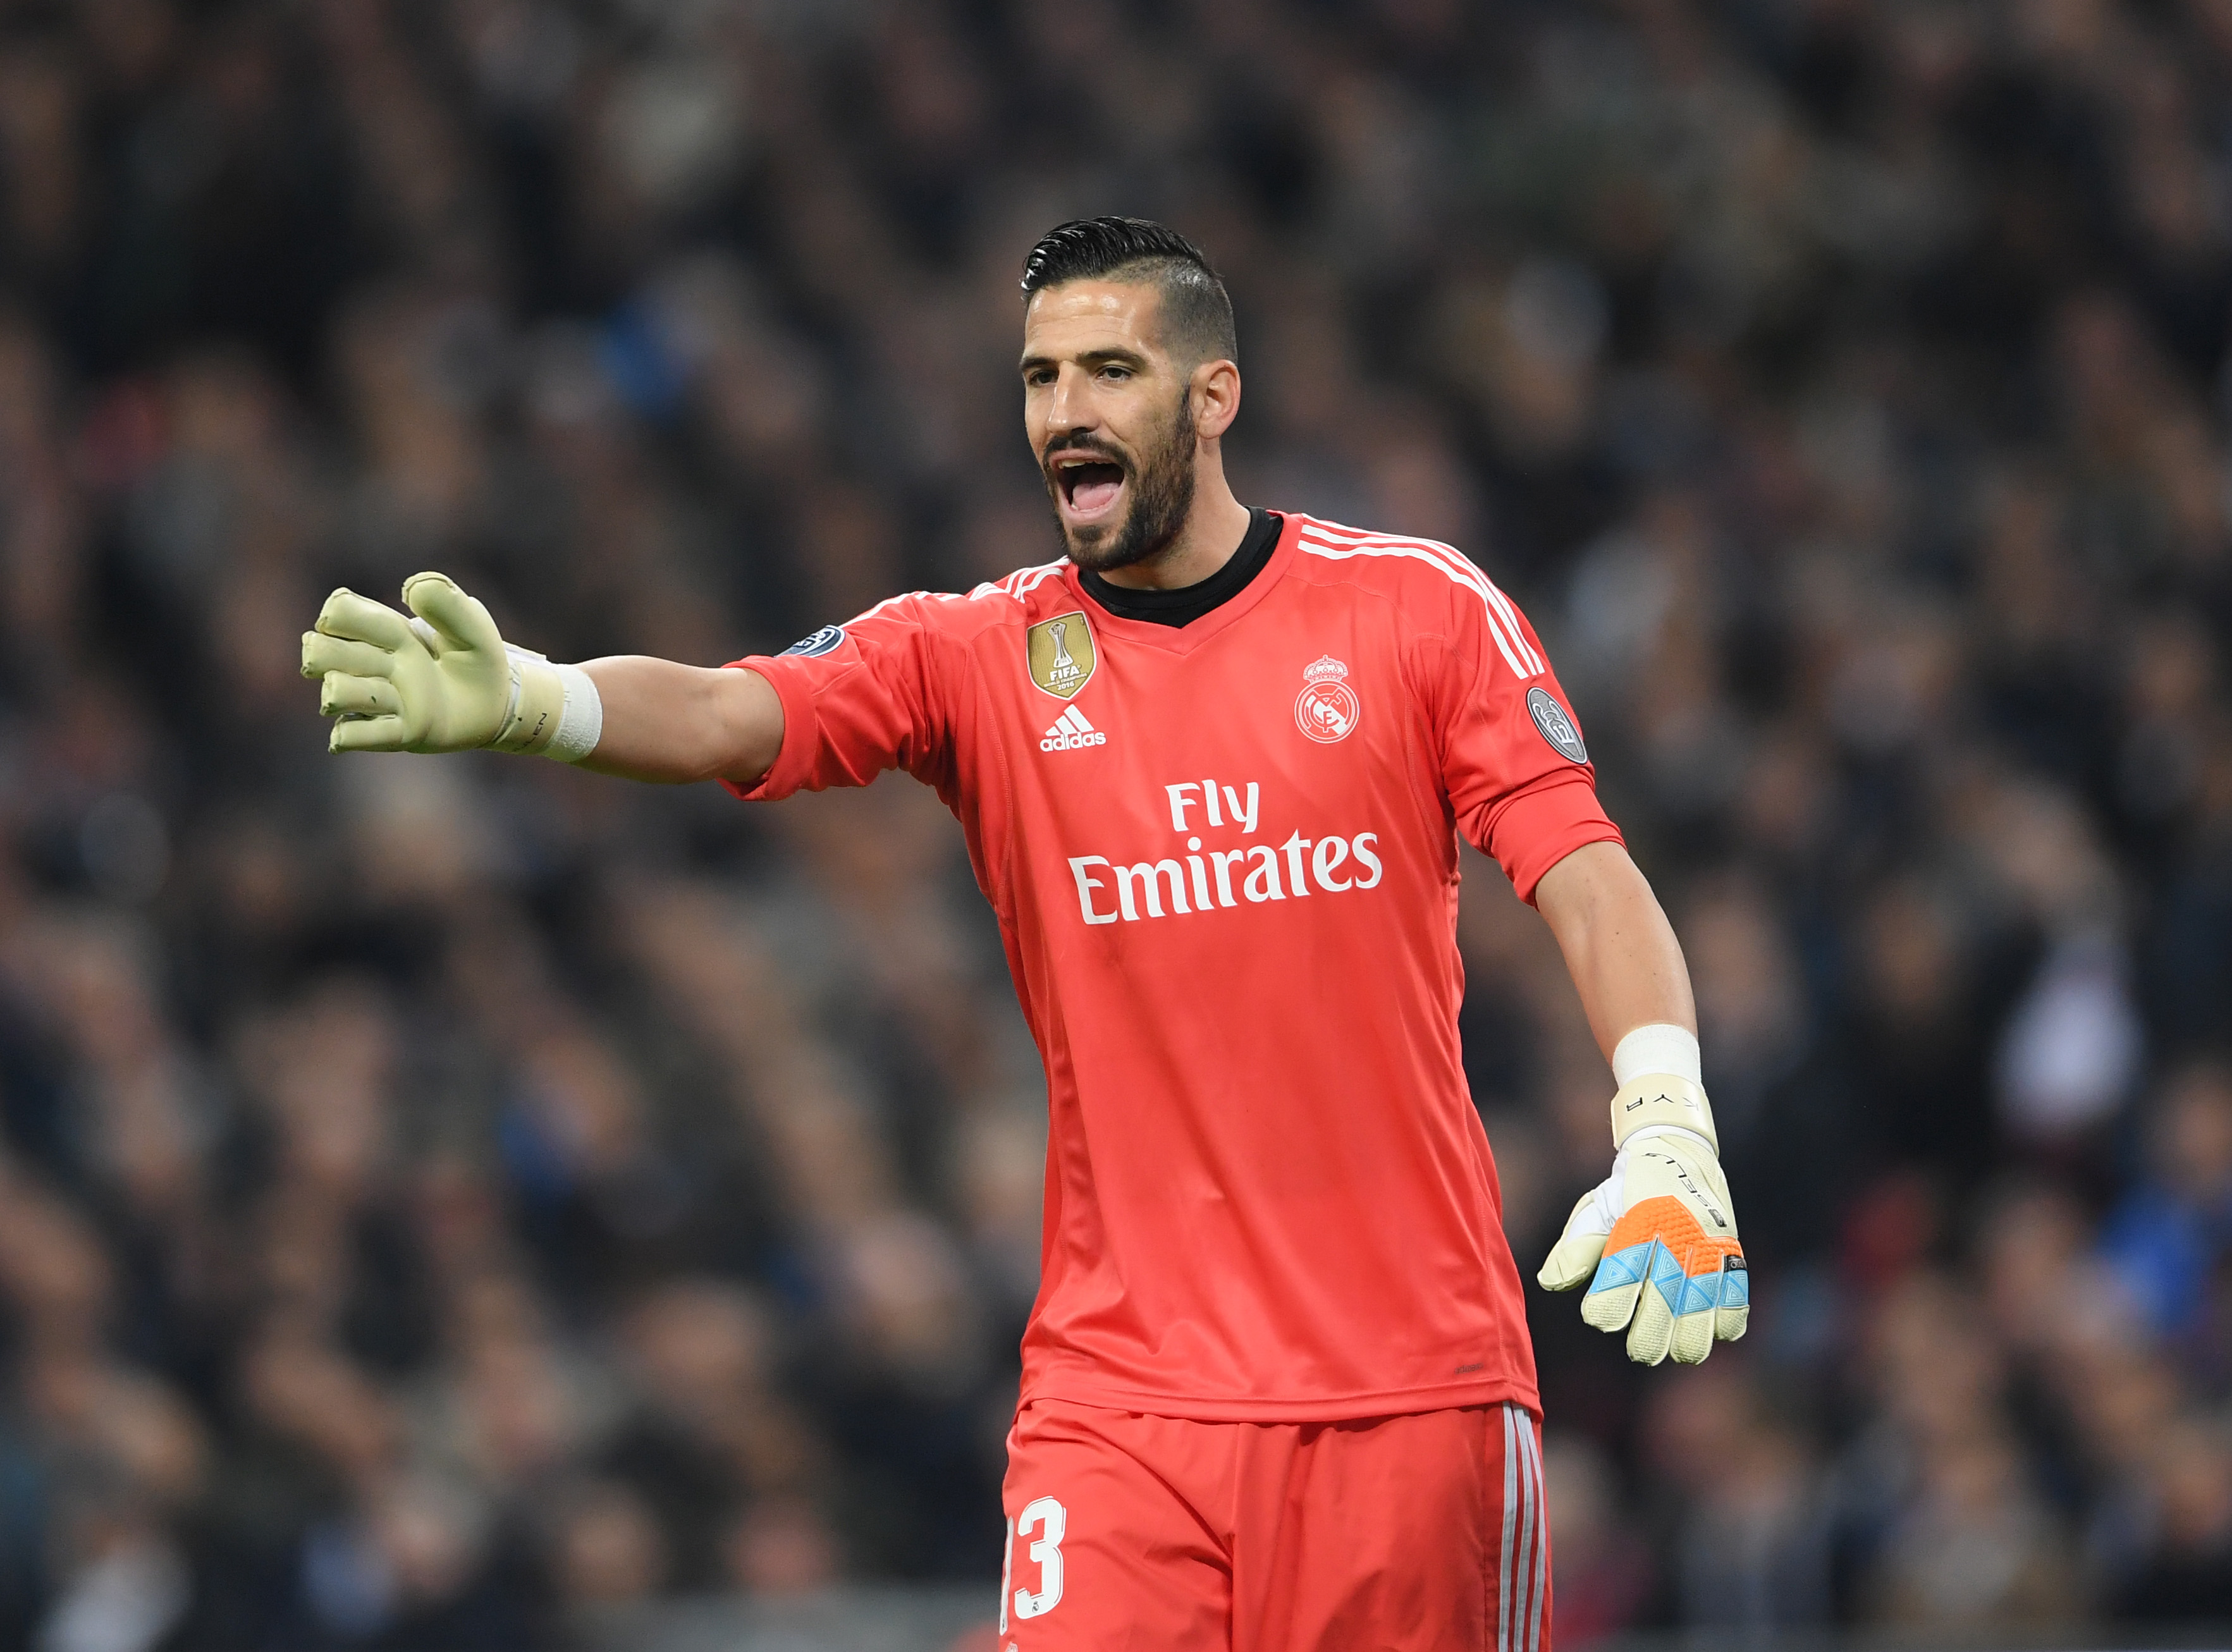 Leeds United pounce for Real Madrid goalkeeper Casilla